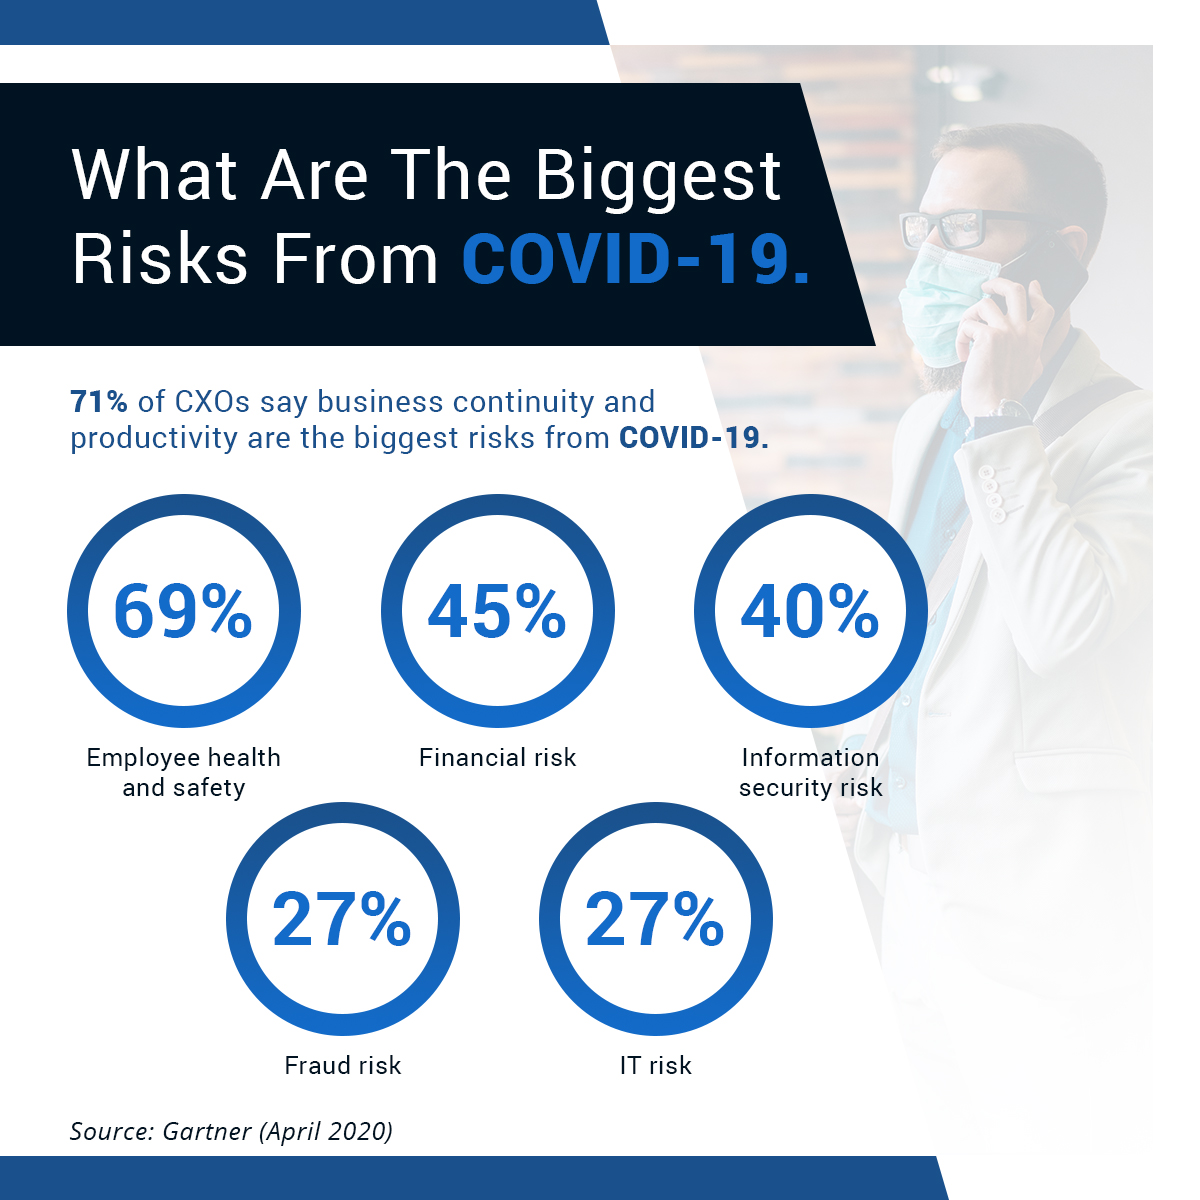 Modern business leaders state that #businesscontinuity and productivity are the amongst the top risks due to COVID-19.  To find out if you have the right #technology investments in place to address these risks, visit:  #CFO